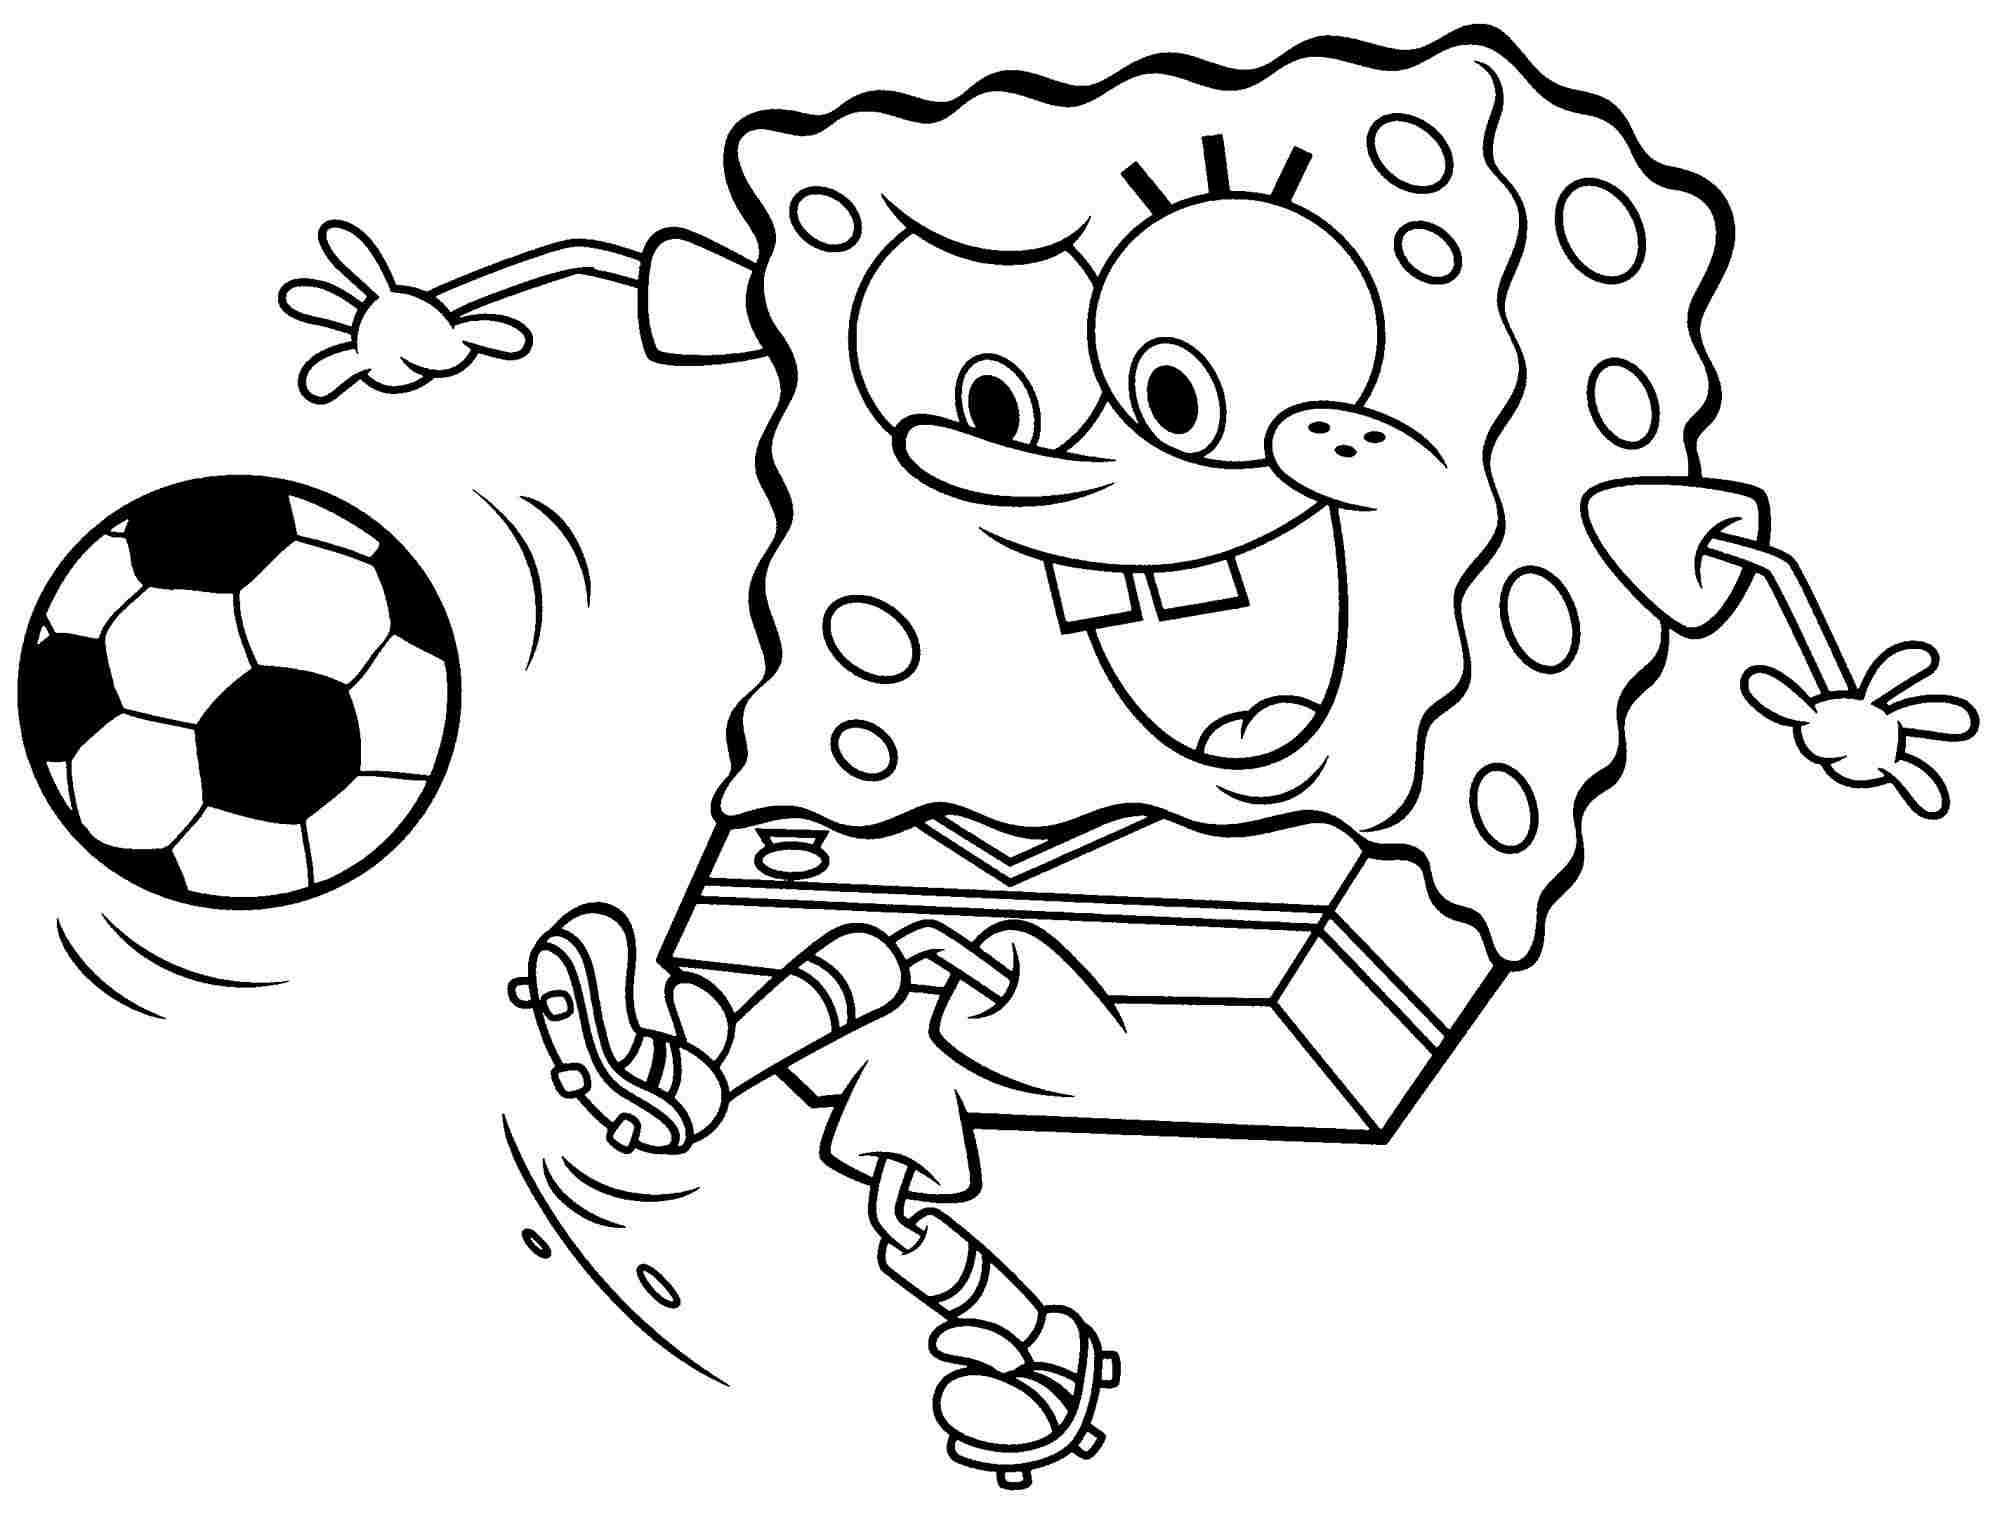 Bob Sponge Coloring Pages - Coloring Home